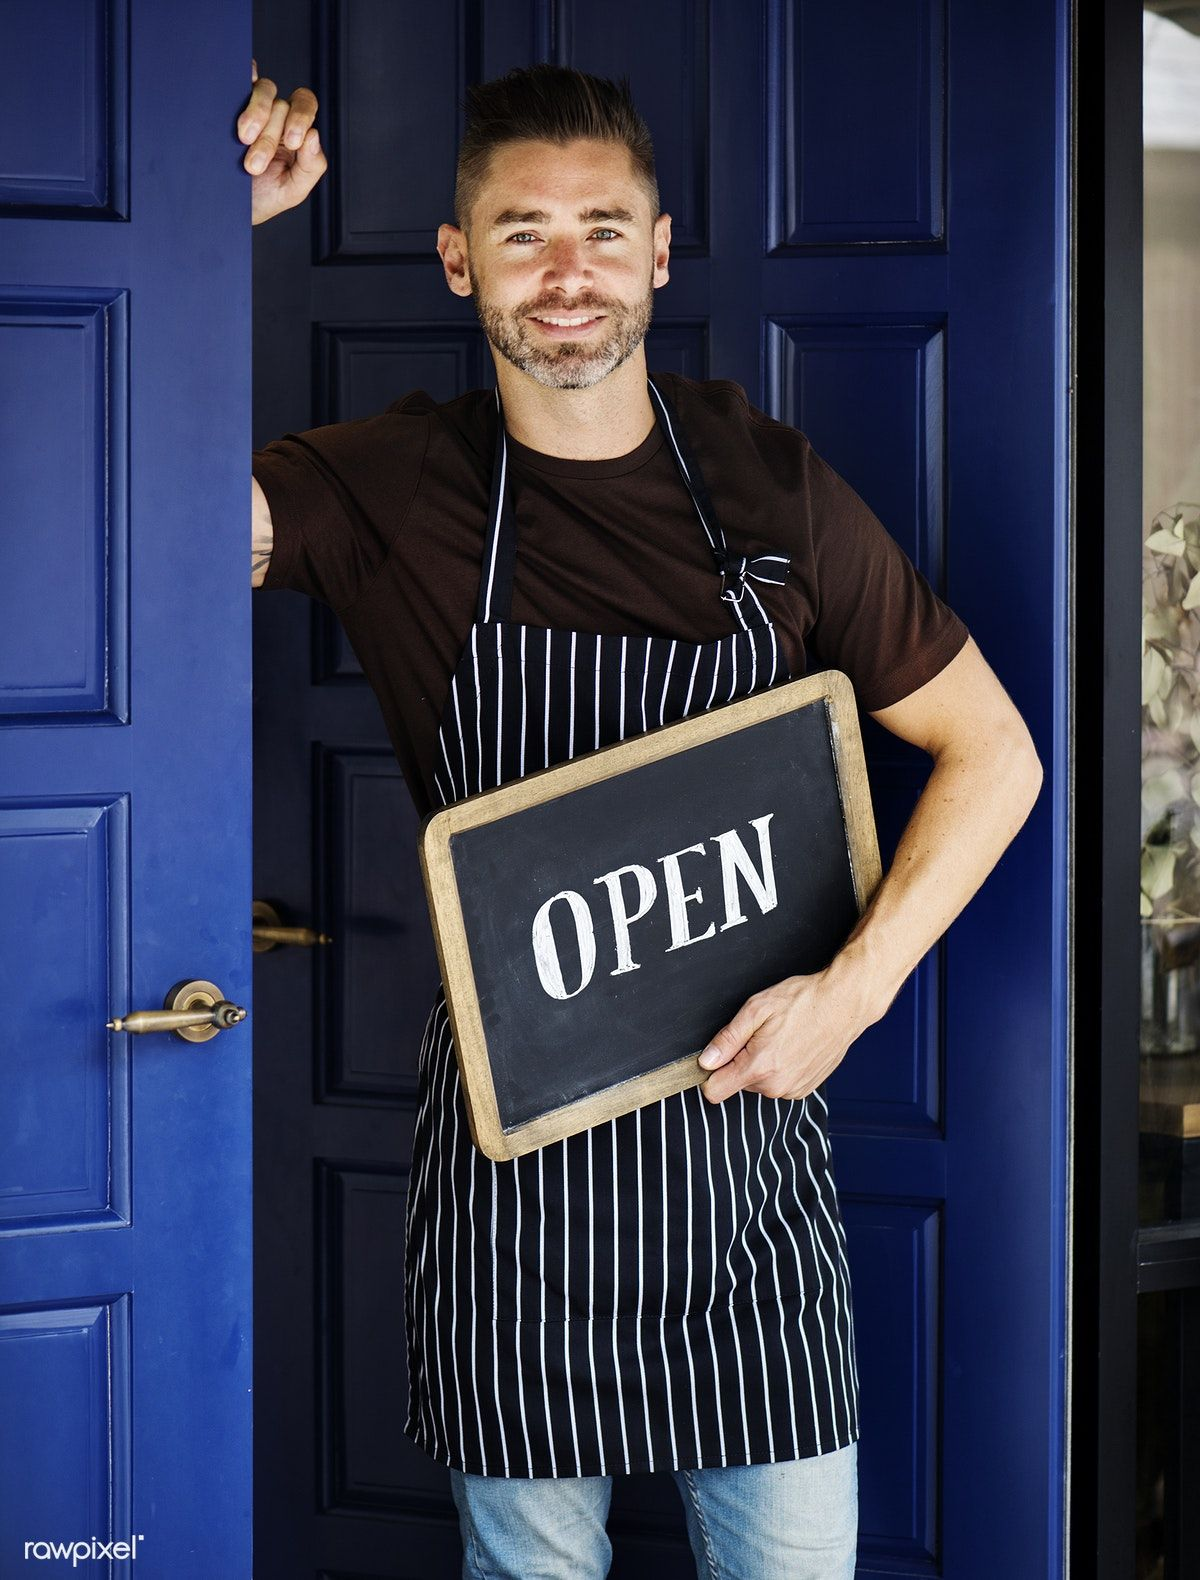 A Cheerful Small Business Owner With Open Sign Get This Free Psd